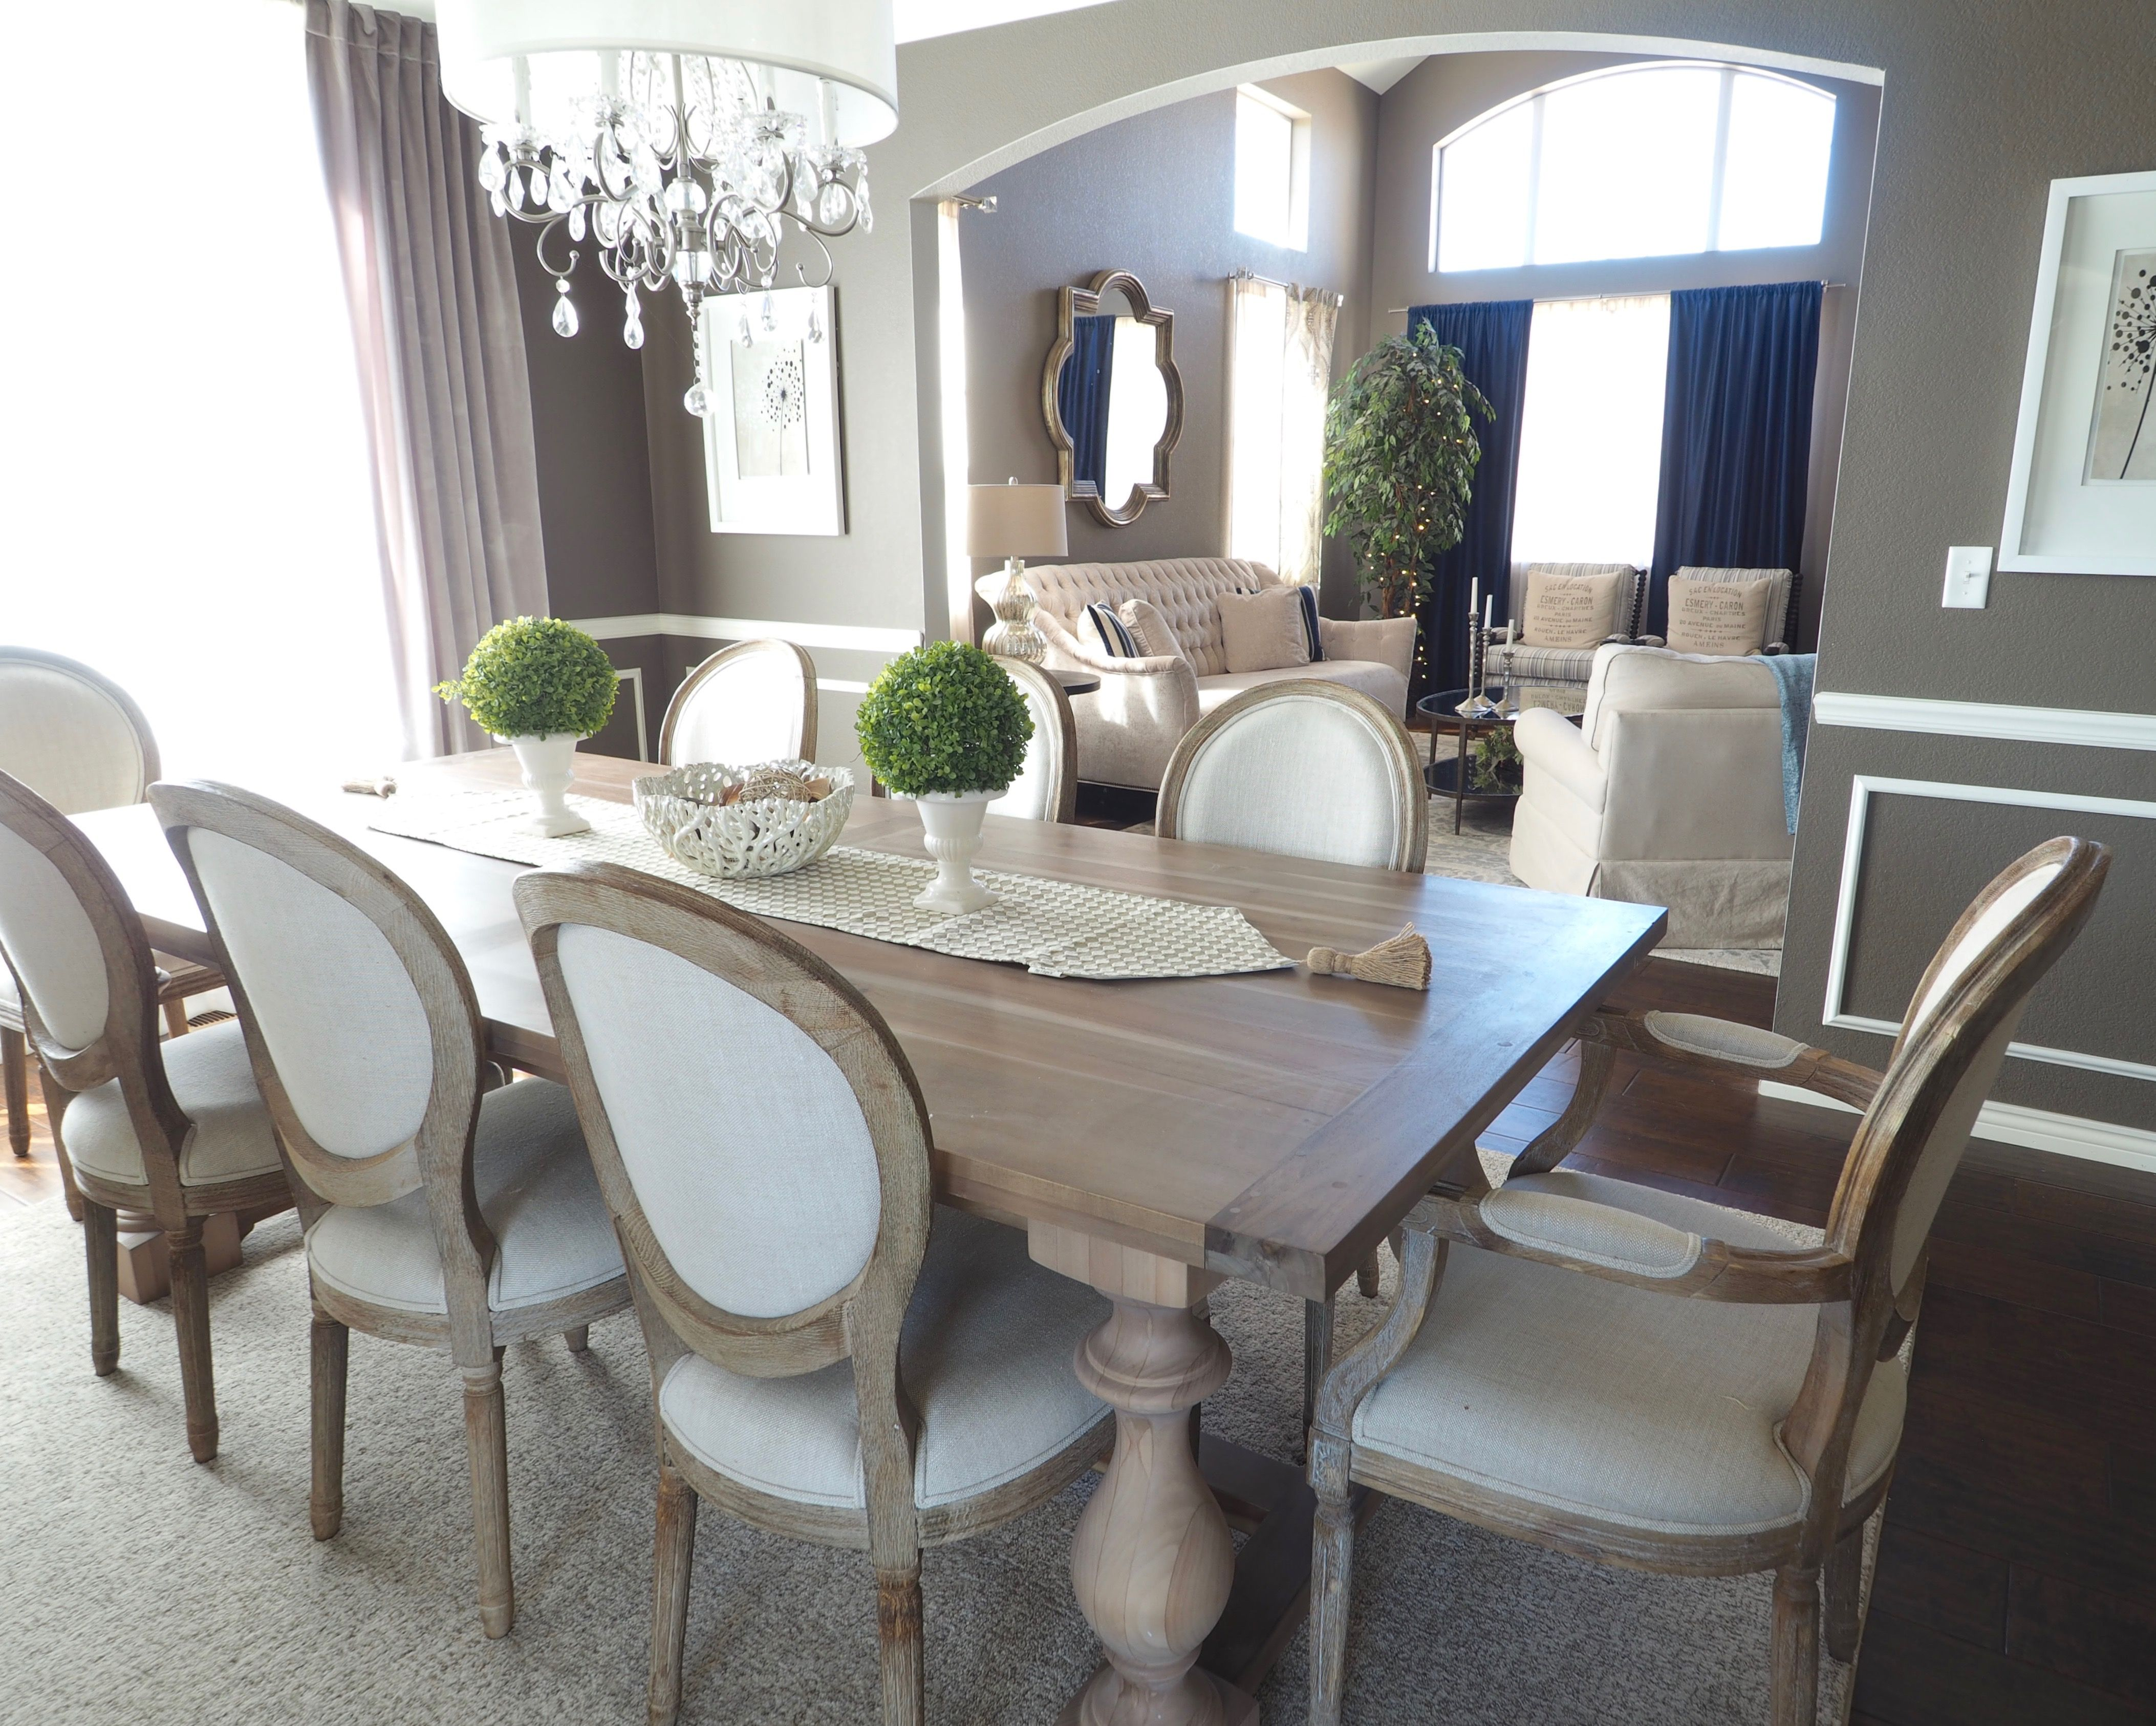 Dining Room Furniture Rustic Glam Dining Room Vintage Dining Room Rustic Dining Room